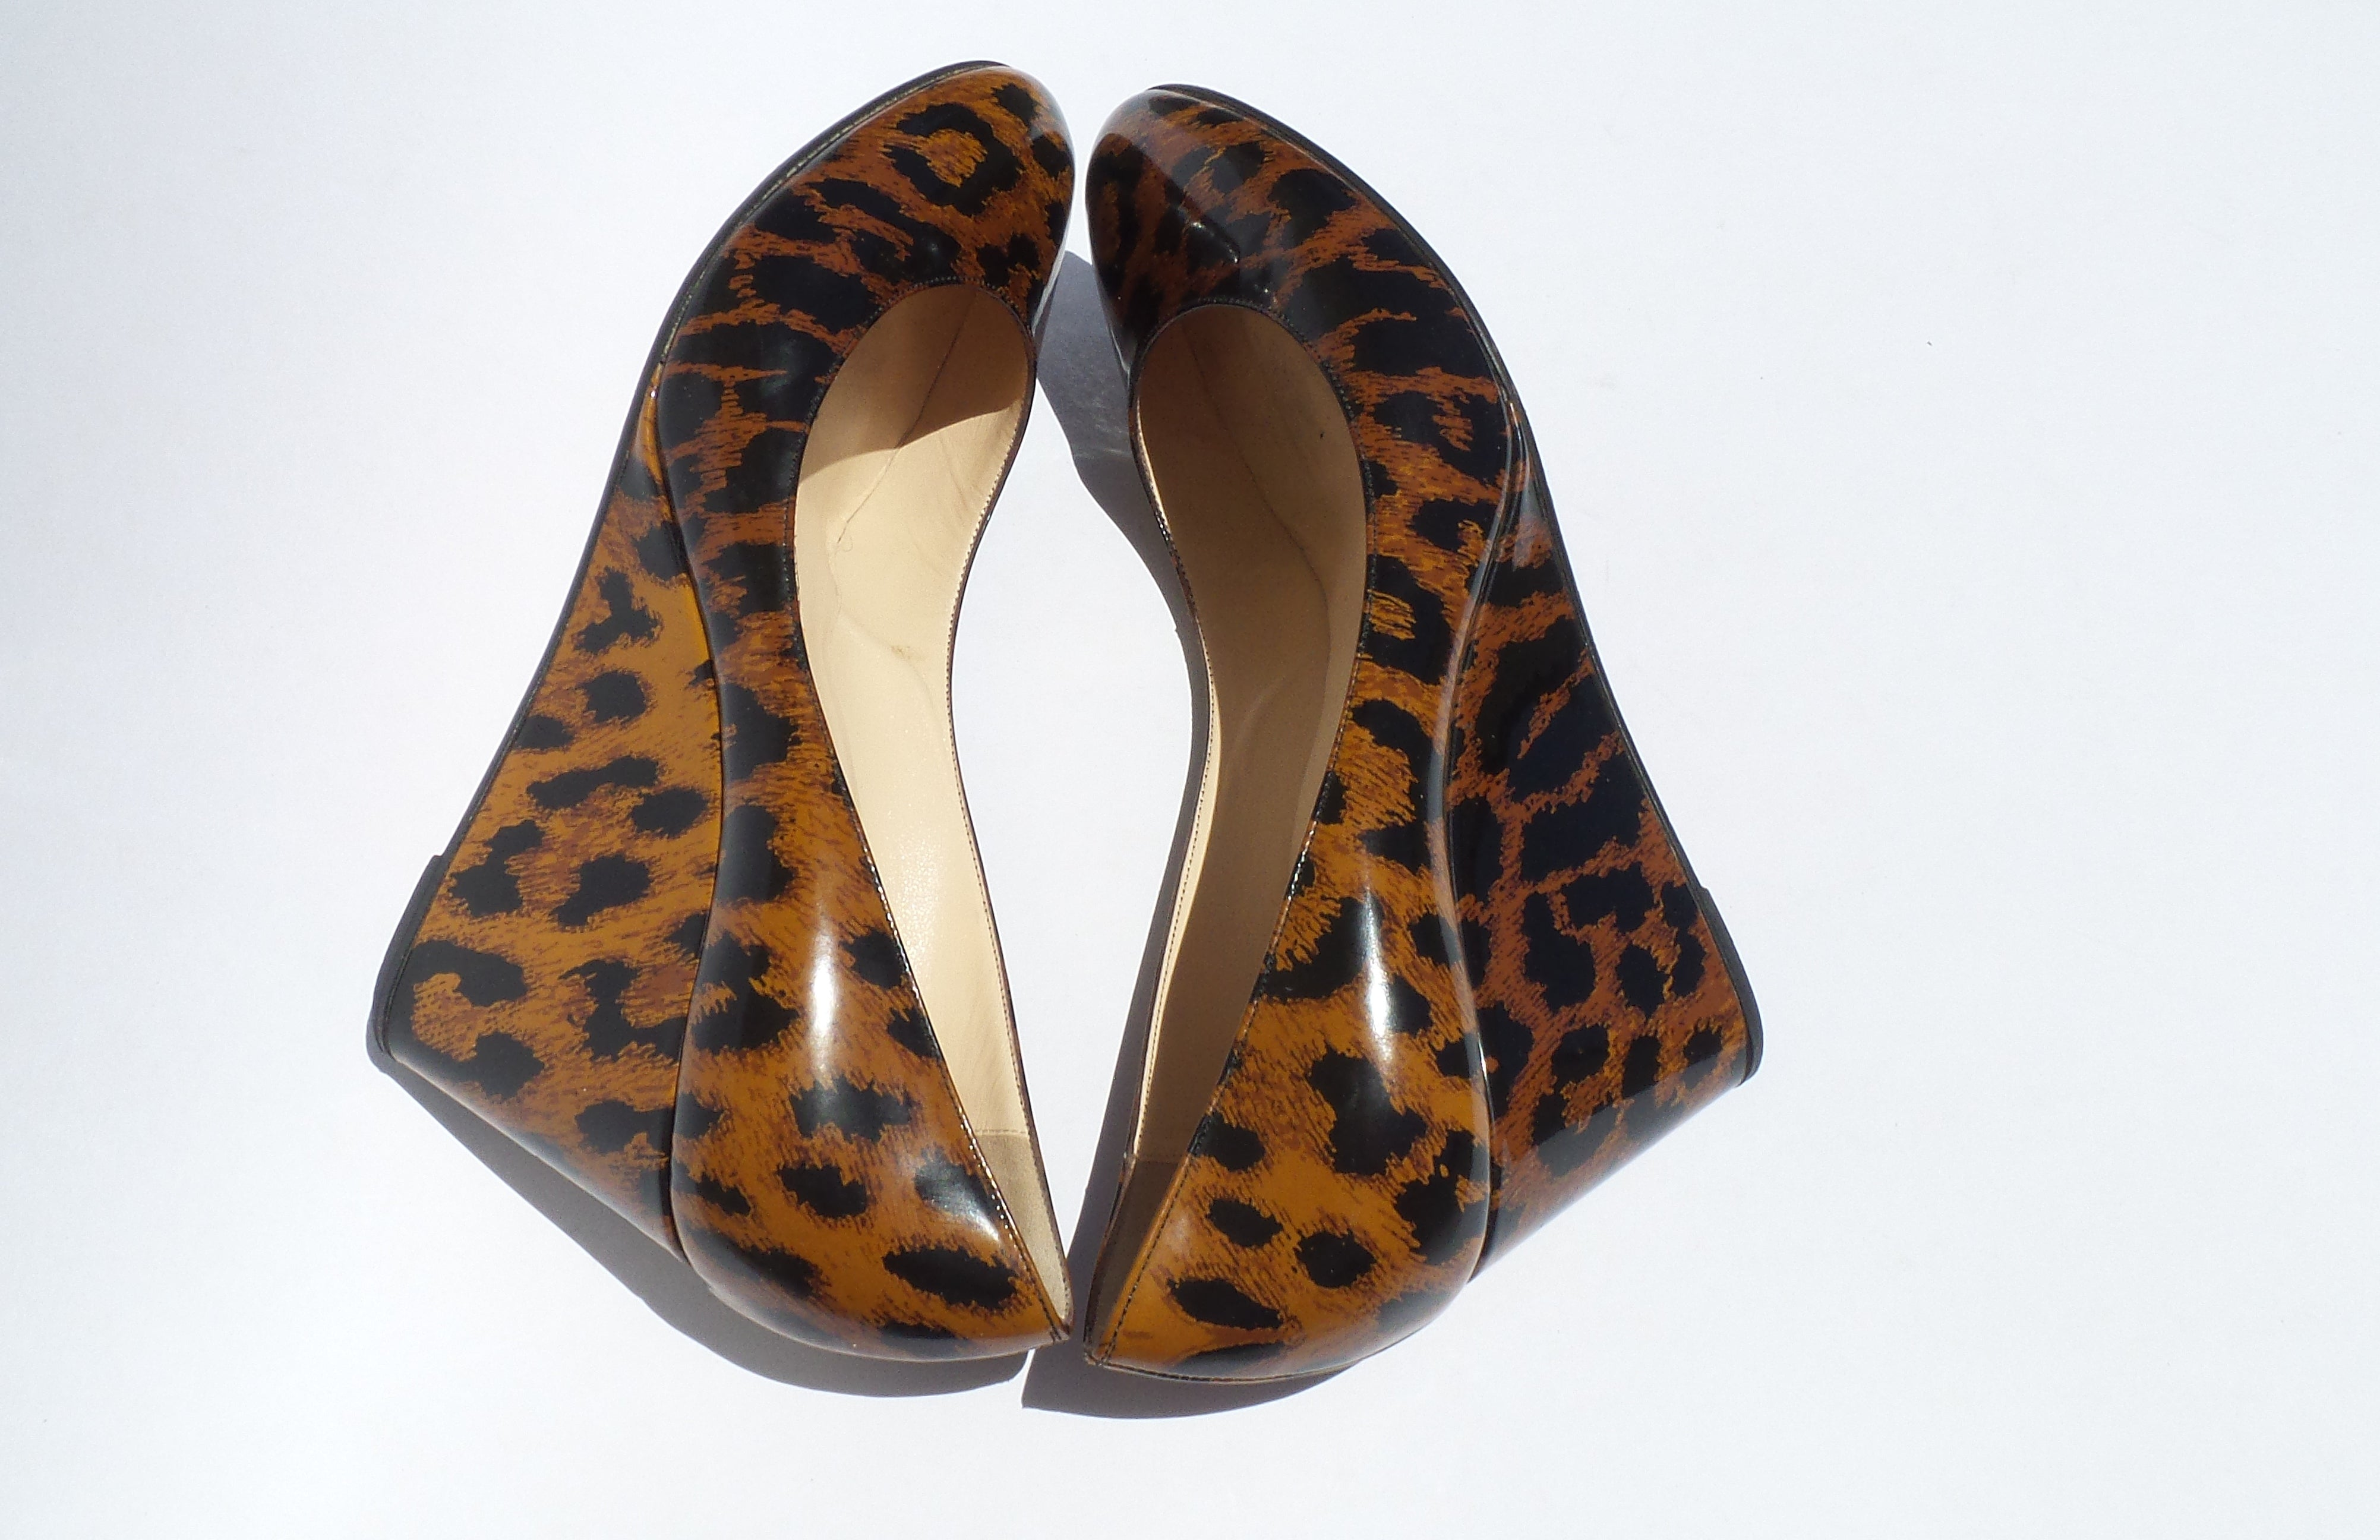 'Sold' CHRISTIAN LOUBOUTIN Brown Black Leopard Print Patent Leather Wedges 39.5